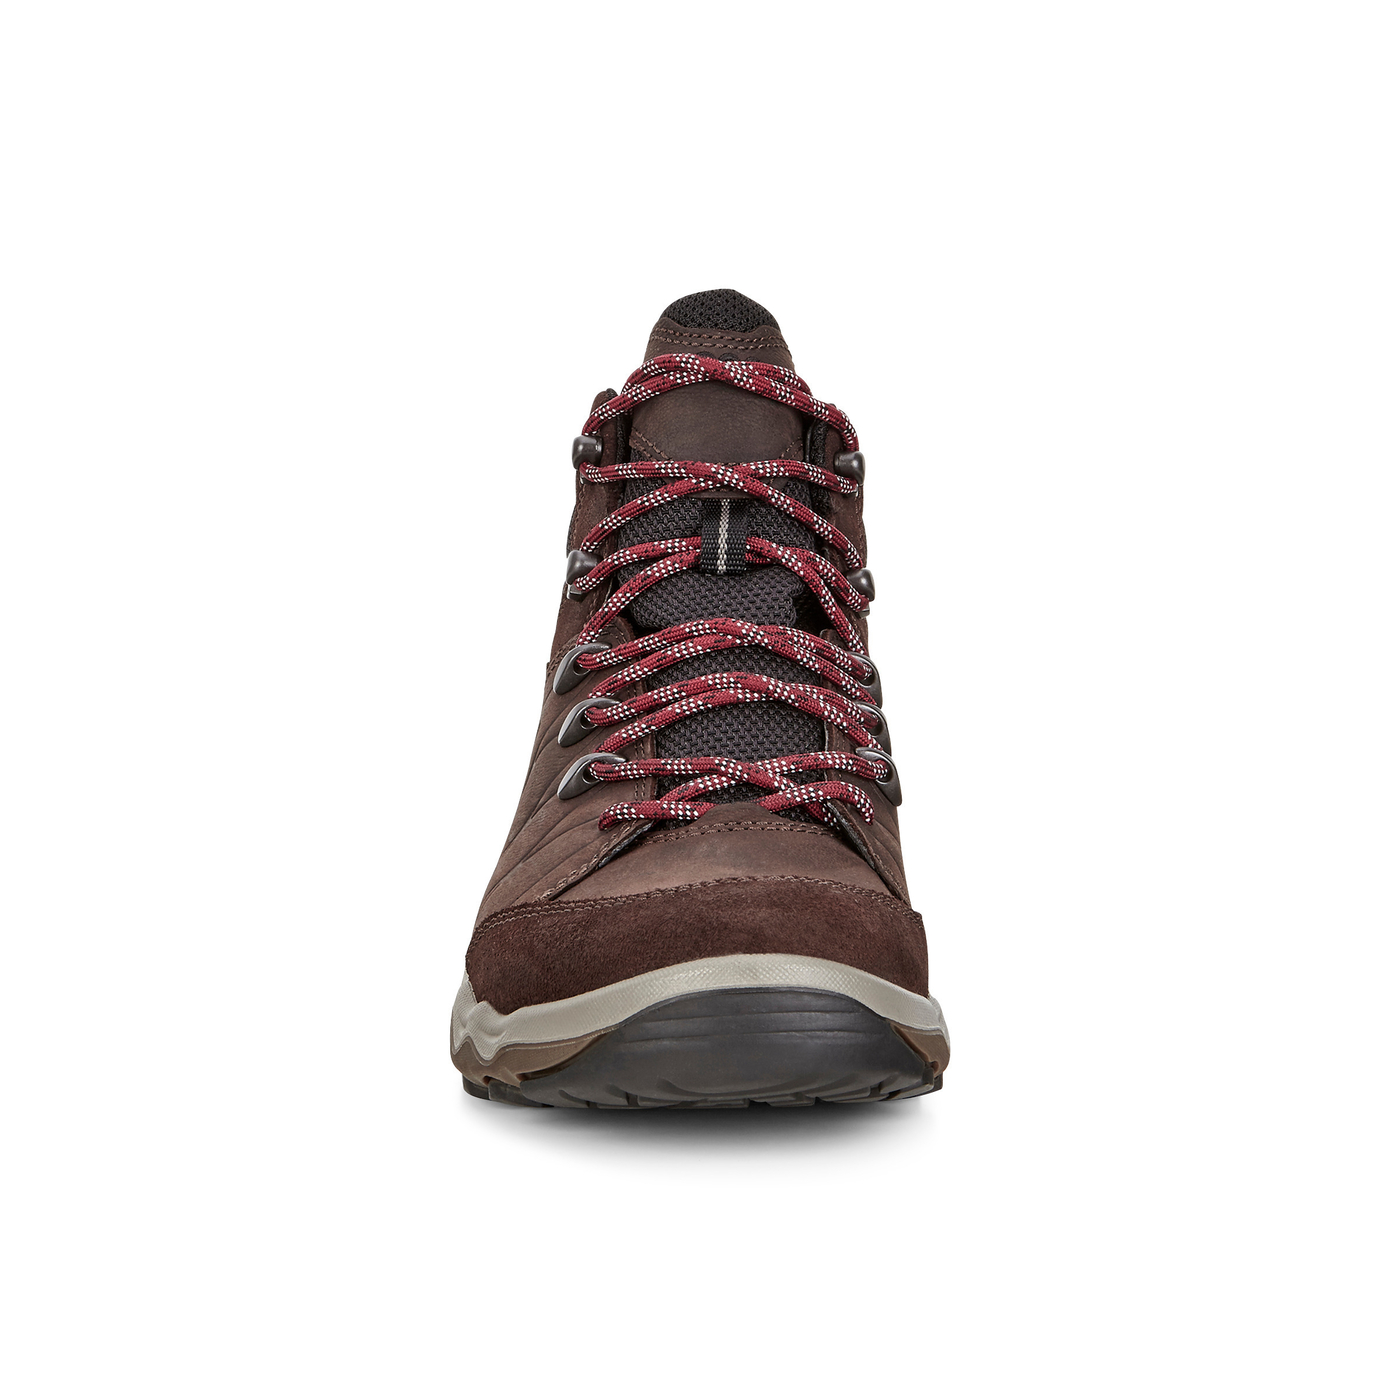 ECCO ULTERRA MEN'S Outdoor Mid